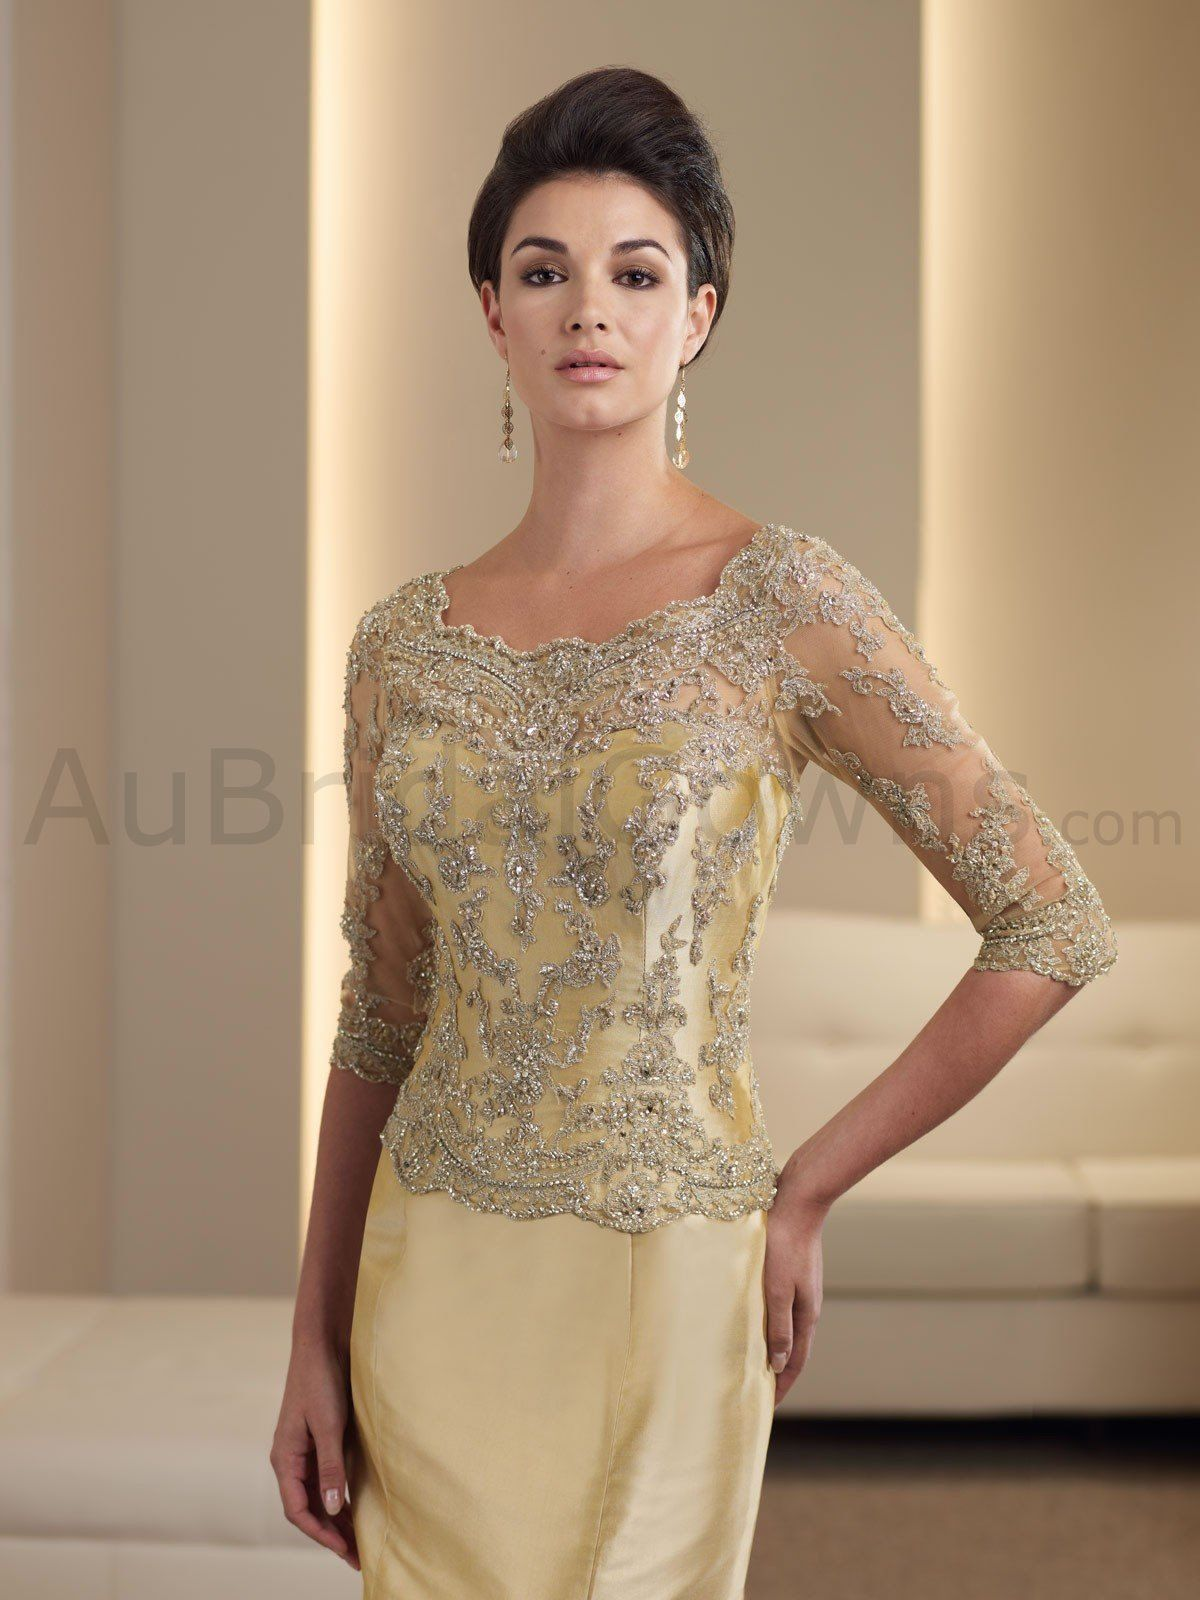 1000  images about mother of the groom dress ideas on Pinterest ...